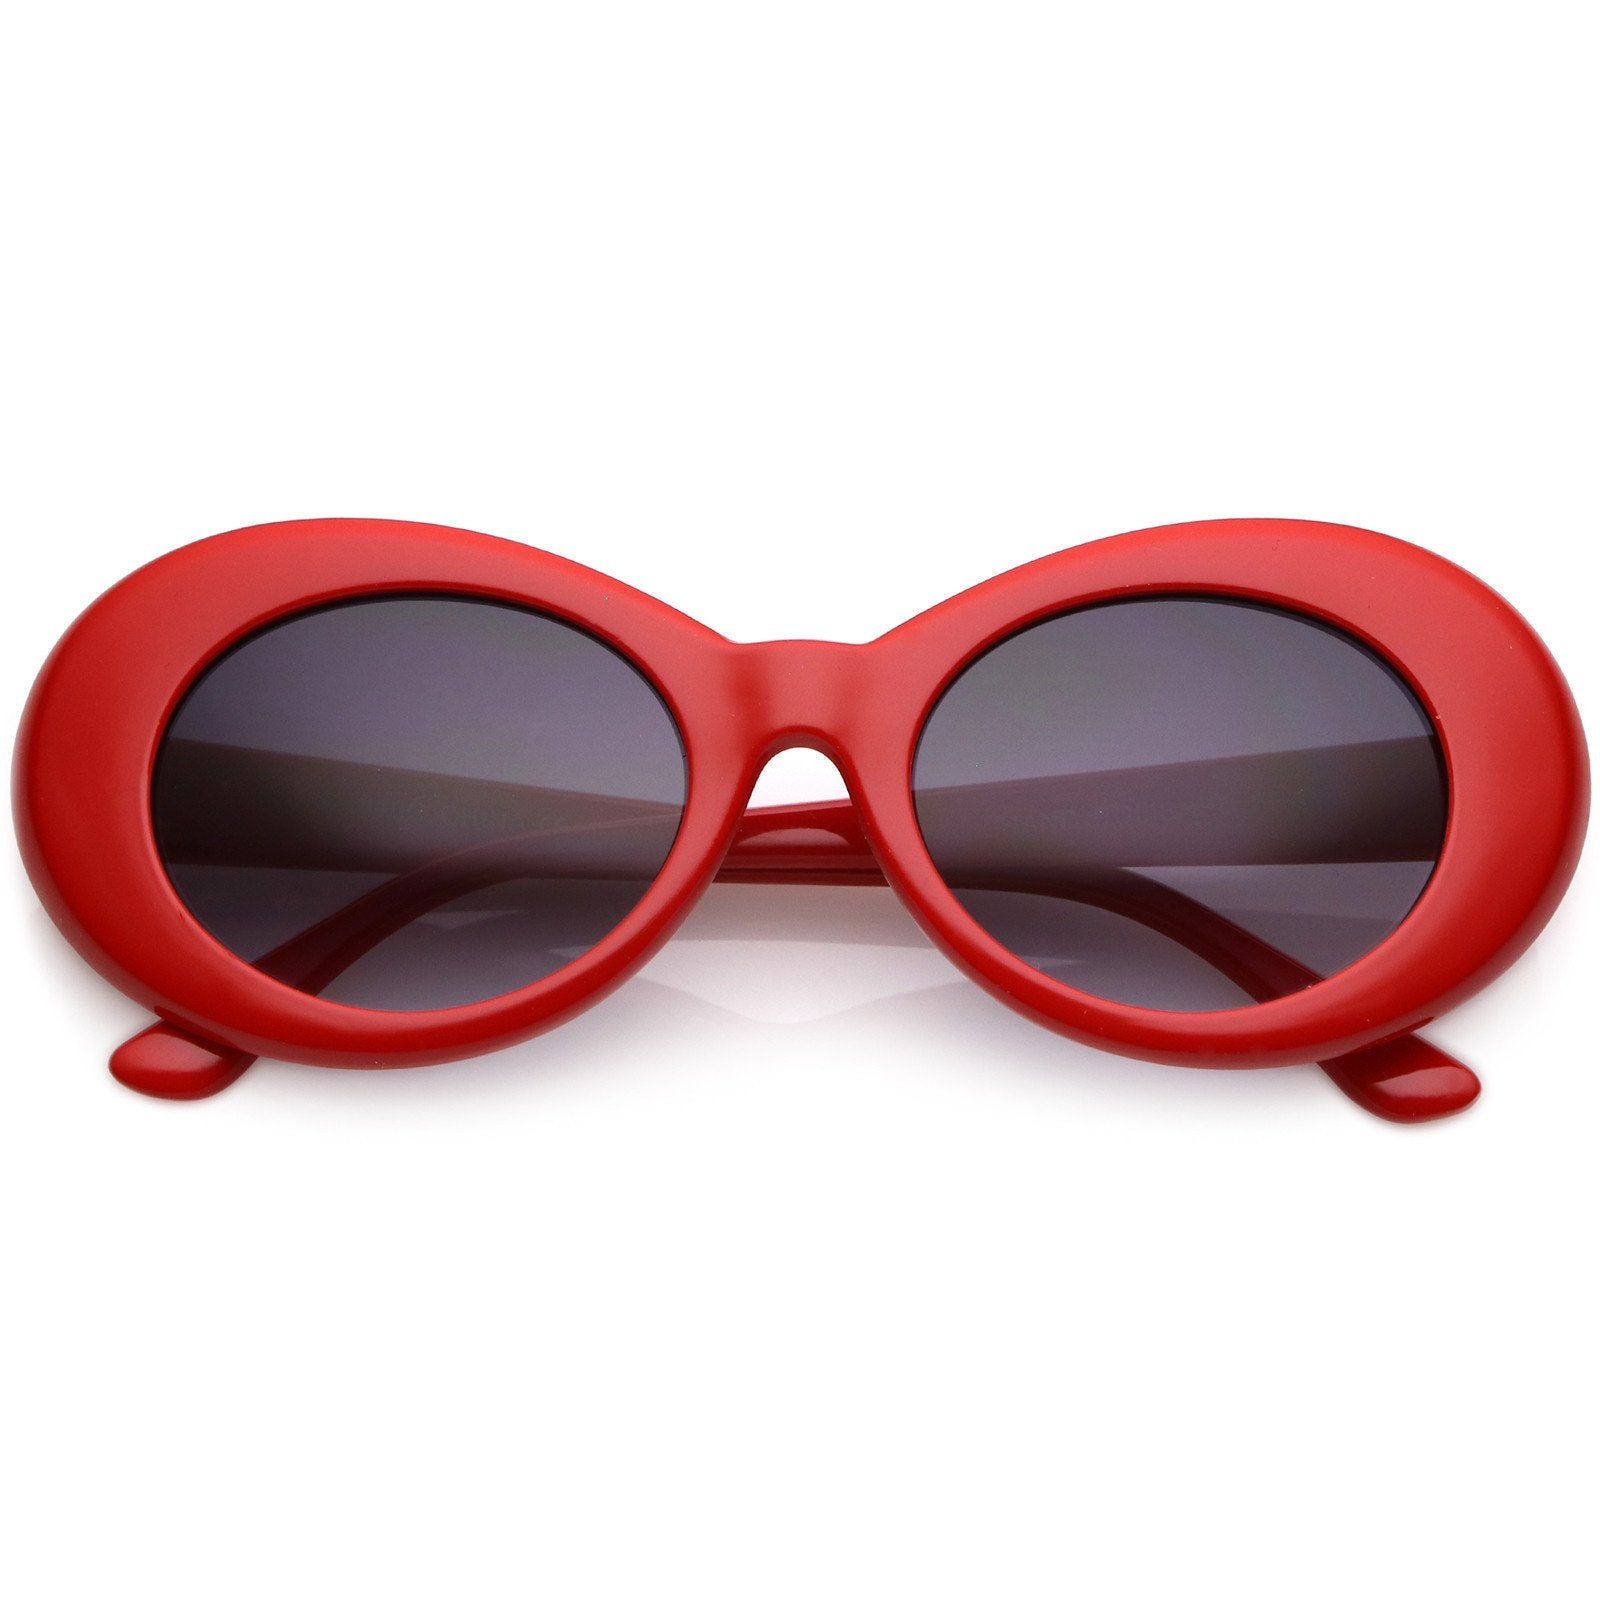 ed7df7eb073 Colorful Retro 1990 s Fashion Round Clout Oval Lens Sunglasses - zeroUV